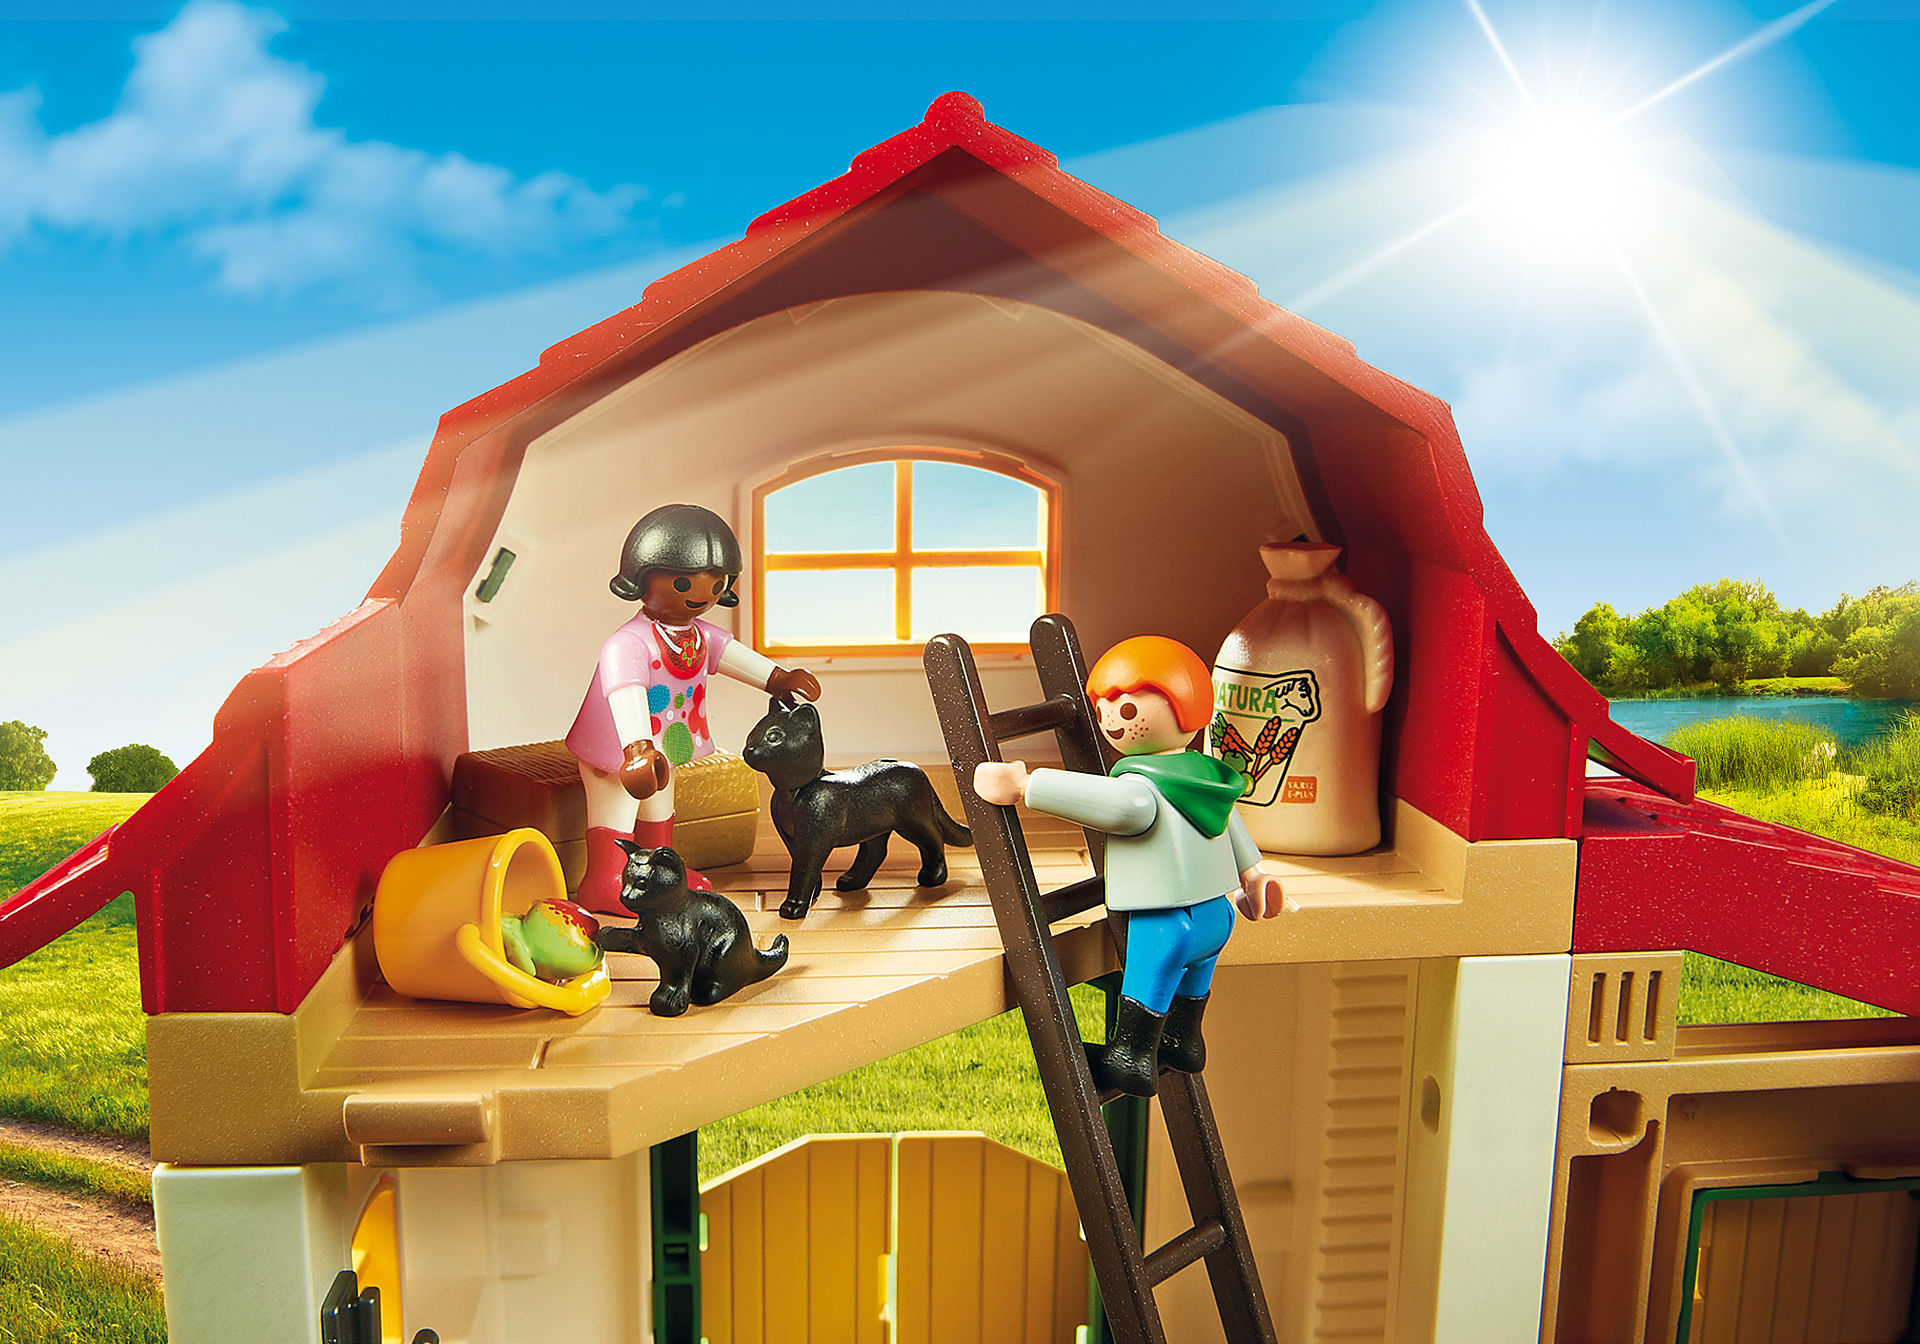 http://media.playmobil.com/i/playmobil/6927_product_extra1/Φάρμα των πόνυ